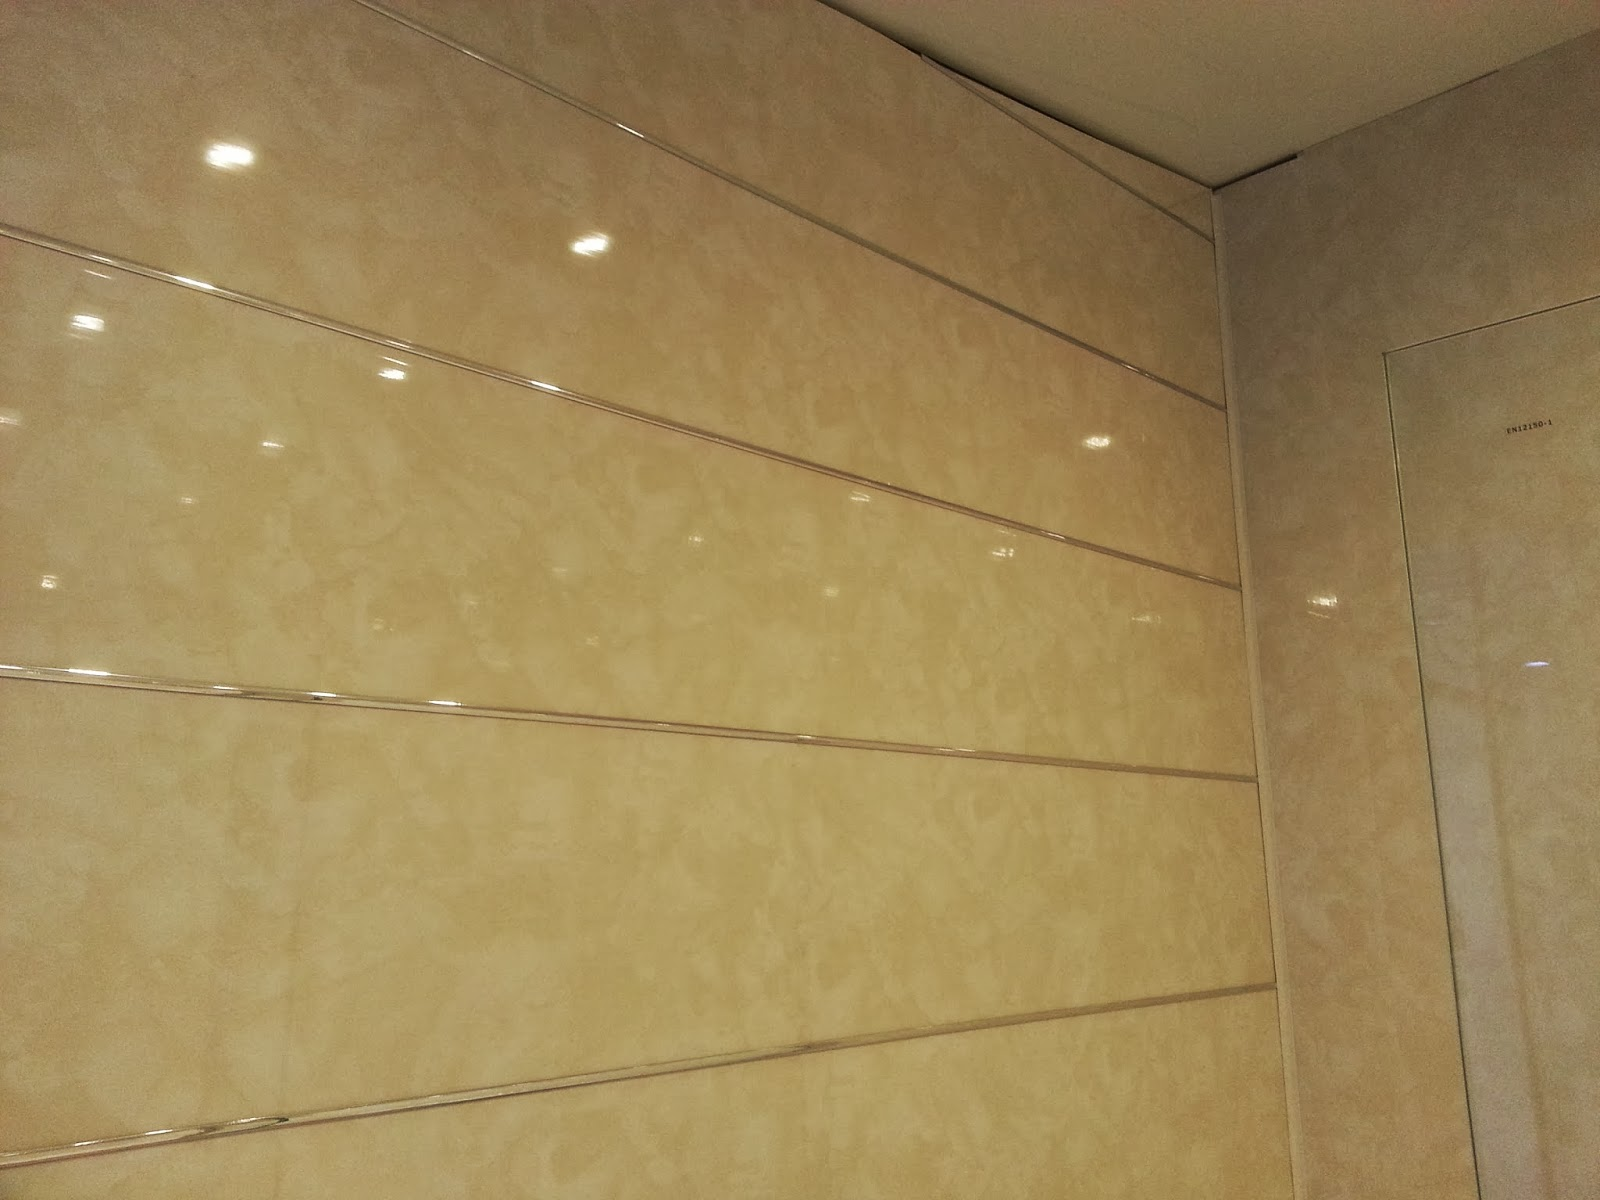 Bathroom Cladding Shop: Marble Effect Bathroom Cladding ...